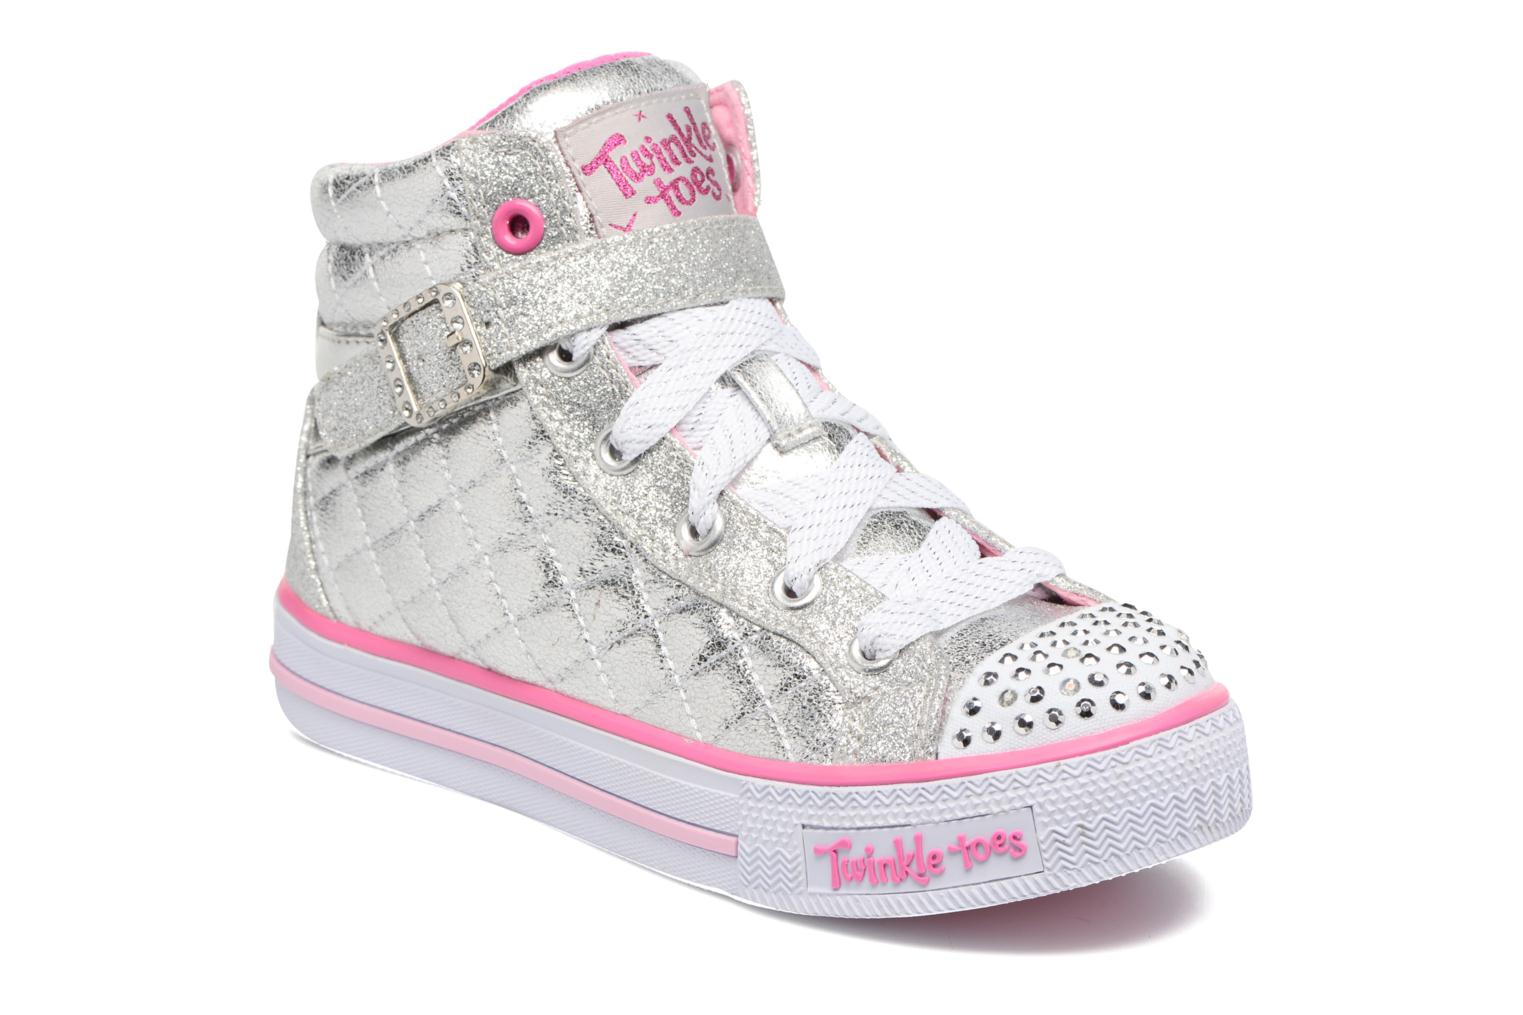 Shuffles Sweetheart Sole Silver/Hot Pink